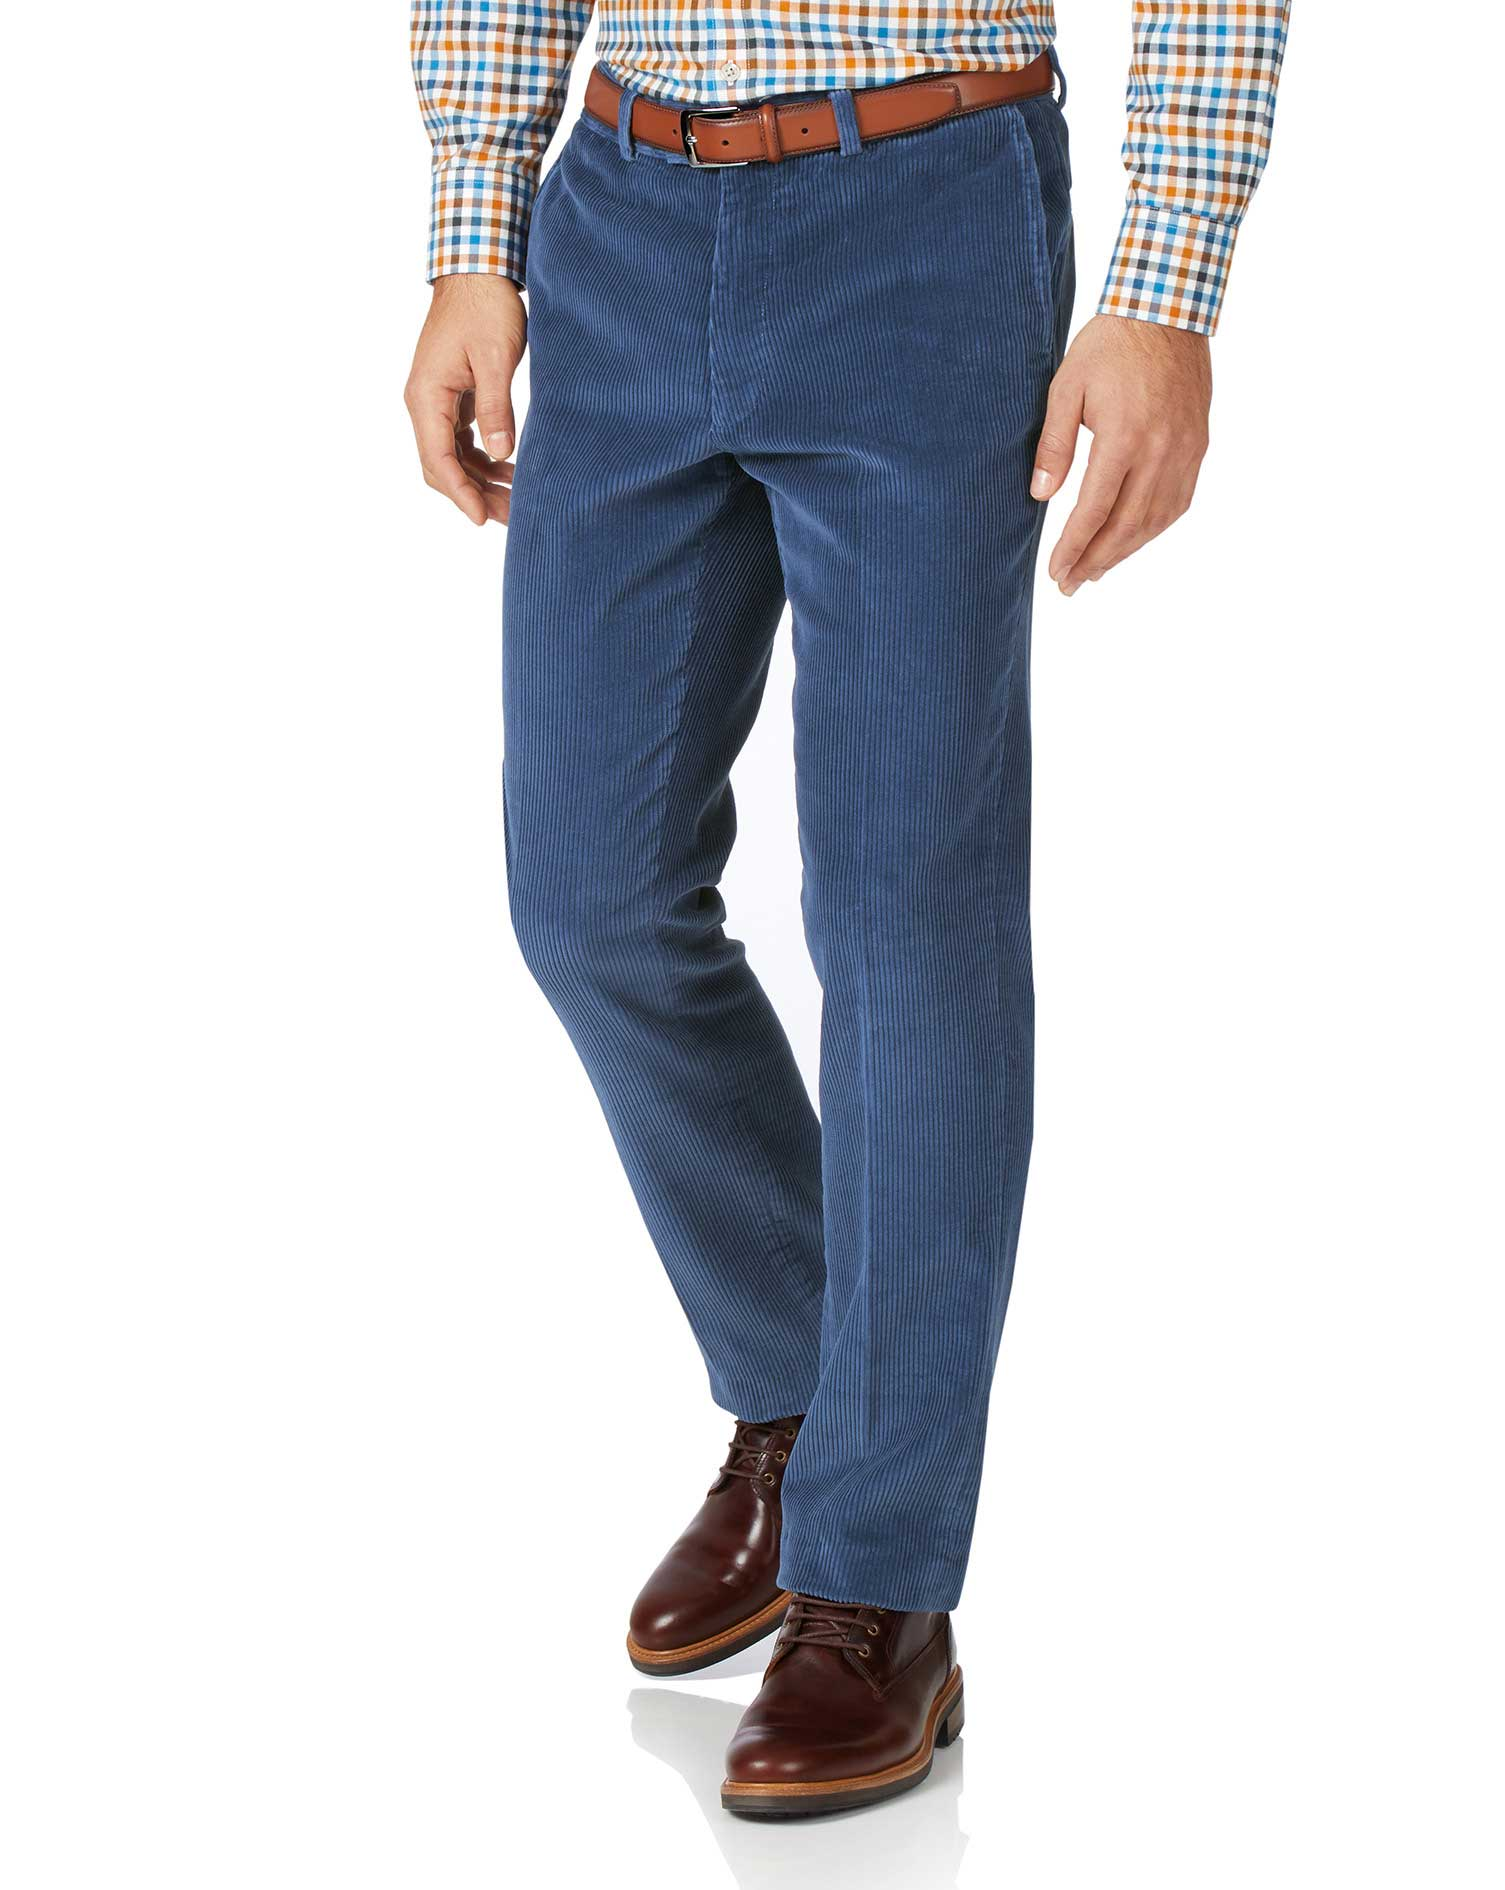 Airforce Blue Classic Fit Jumbo Corduroy Trousers Size W38 L30 by Charles Tyrwhitt